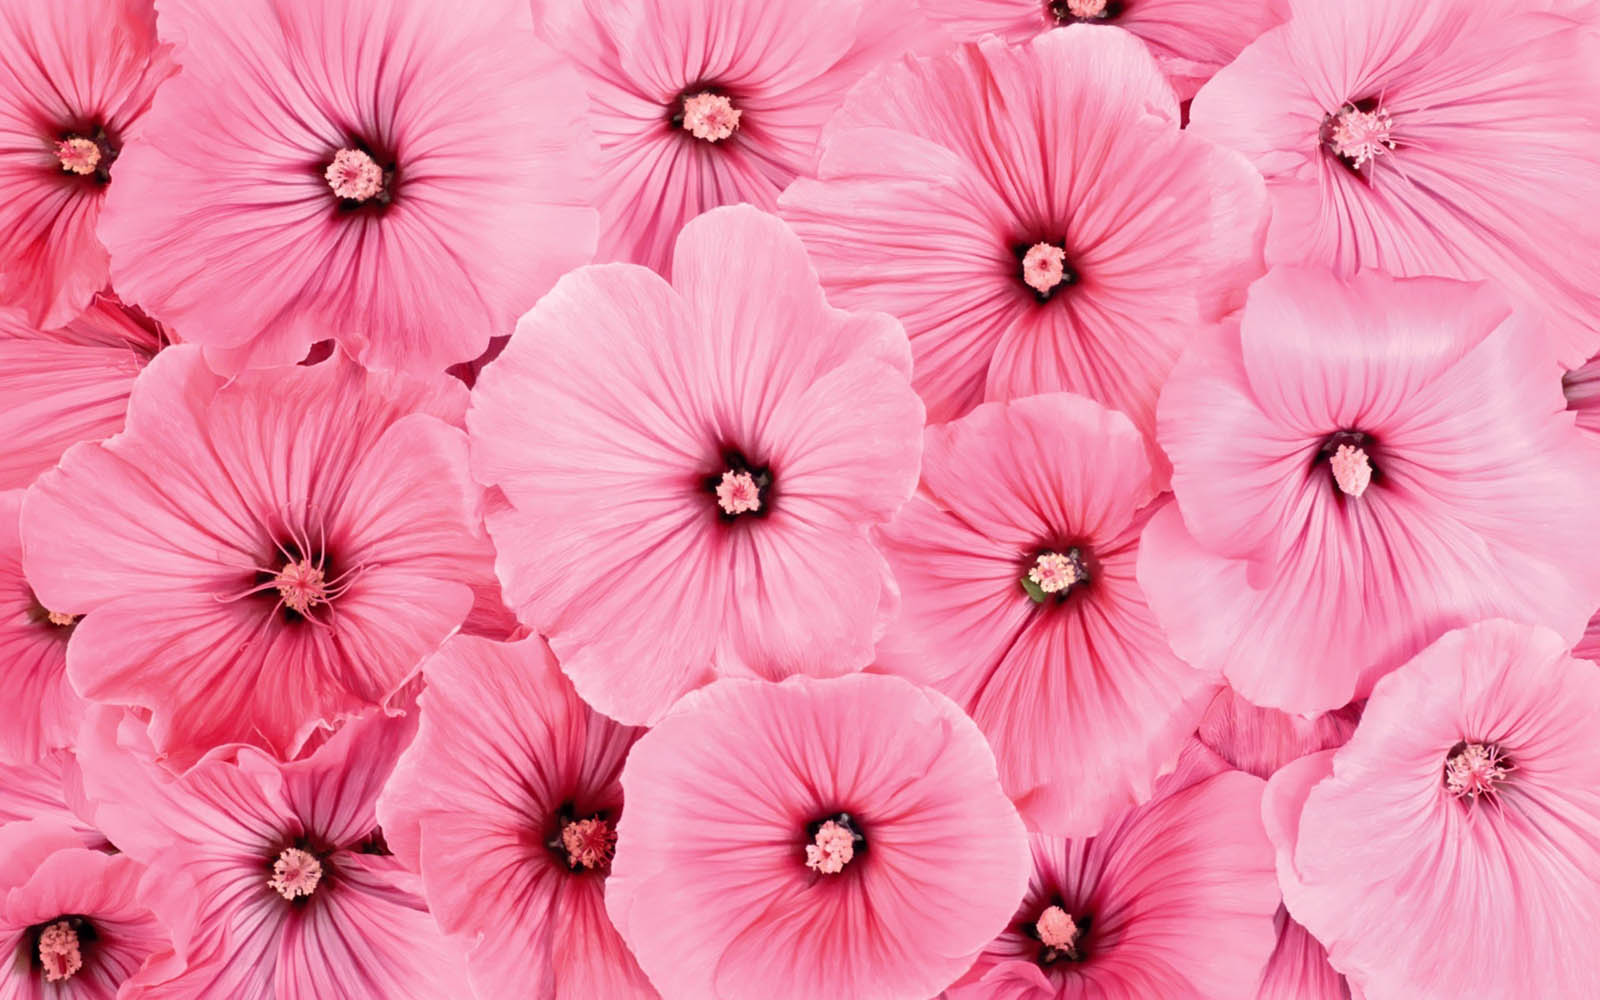 47+] Free Wallpaper Pink Flowers on WallpaperSafari